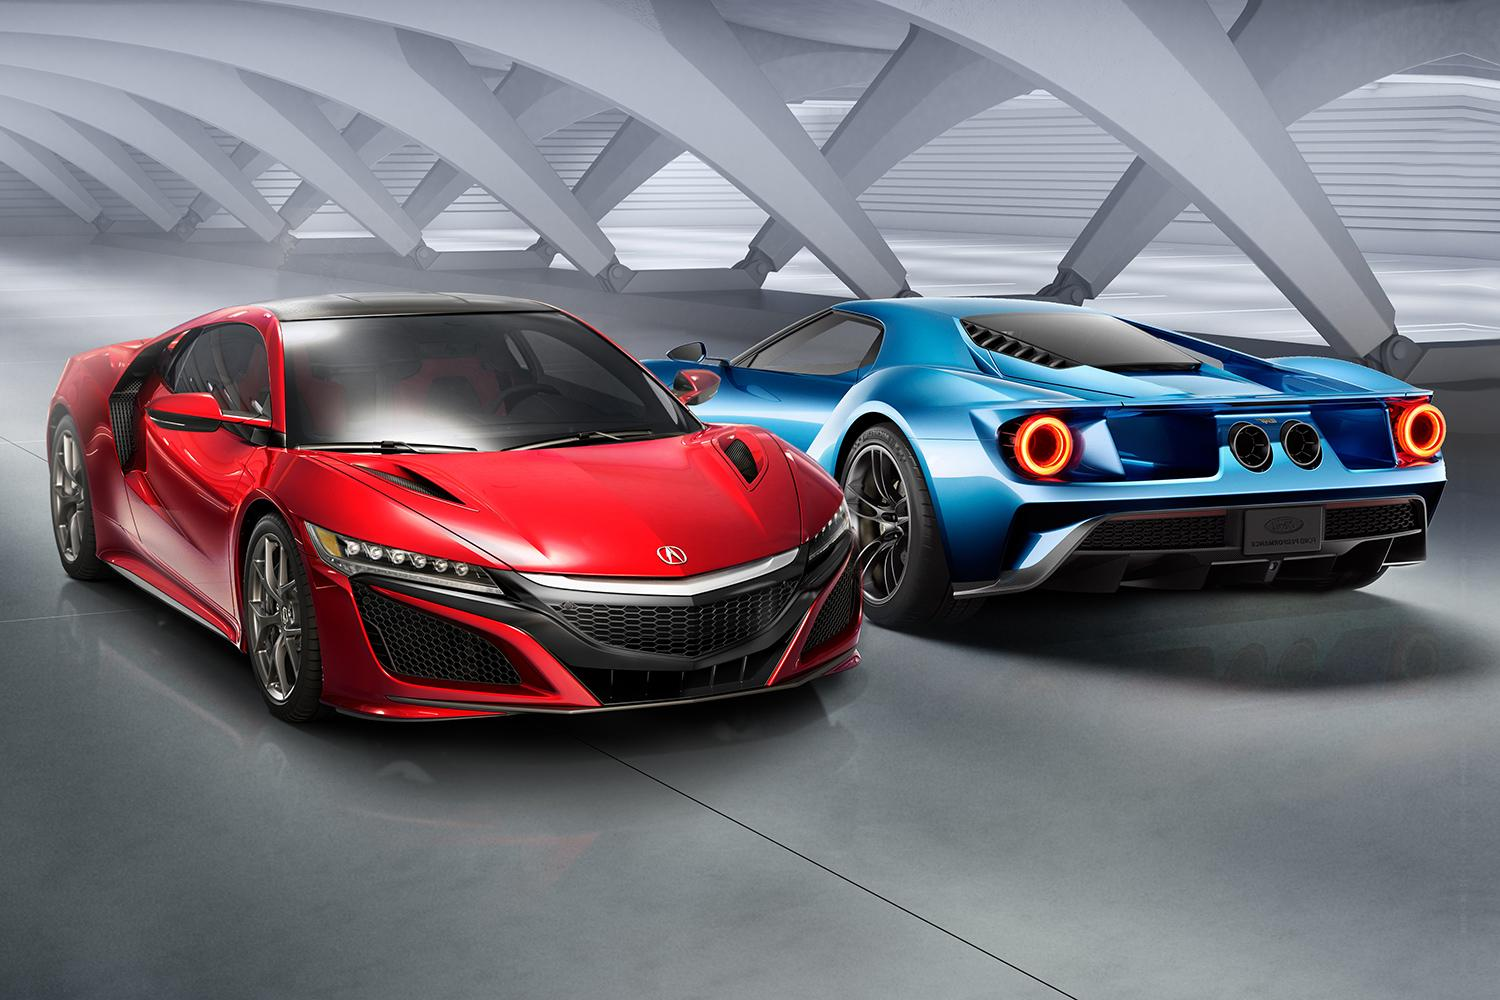 Acura Nsx Vs Ford Gt High Tech Supercar Showdown Digital Trends